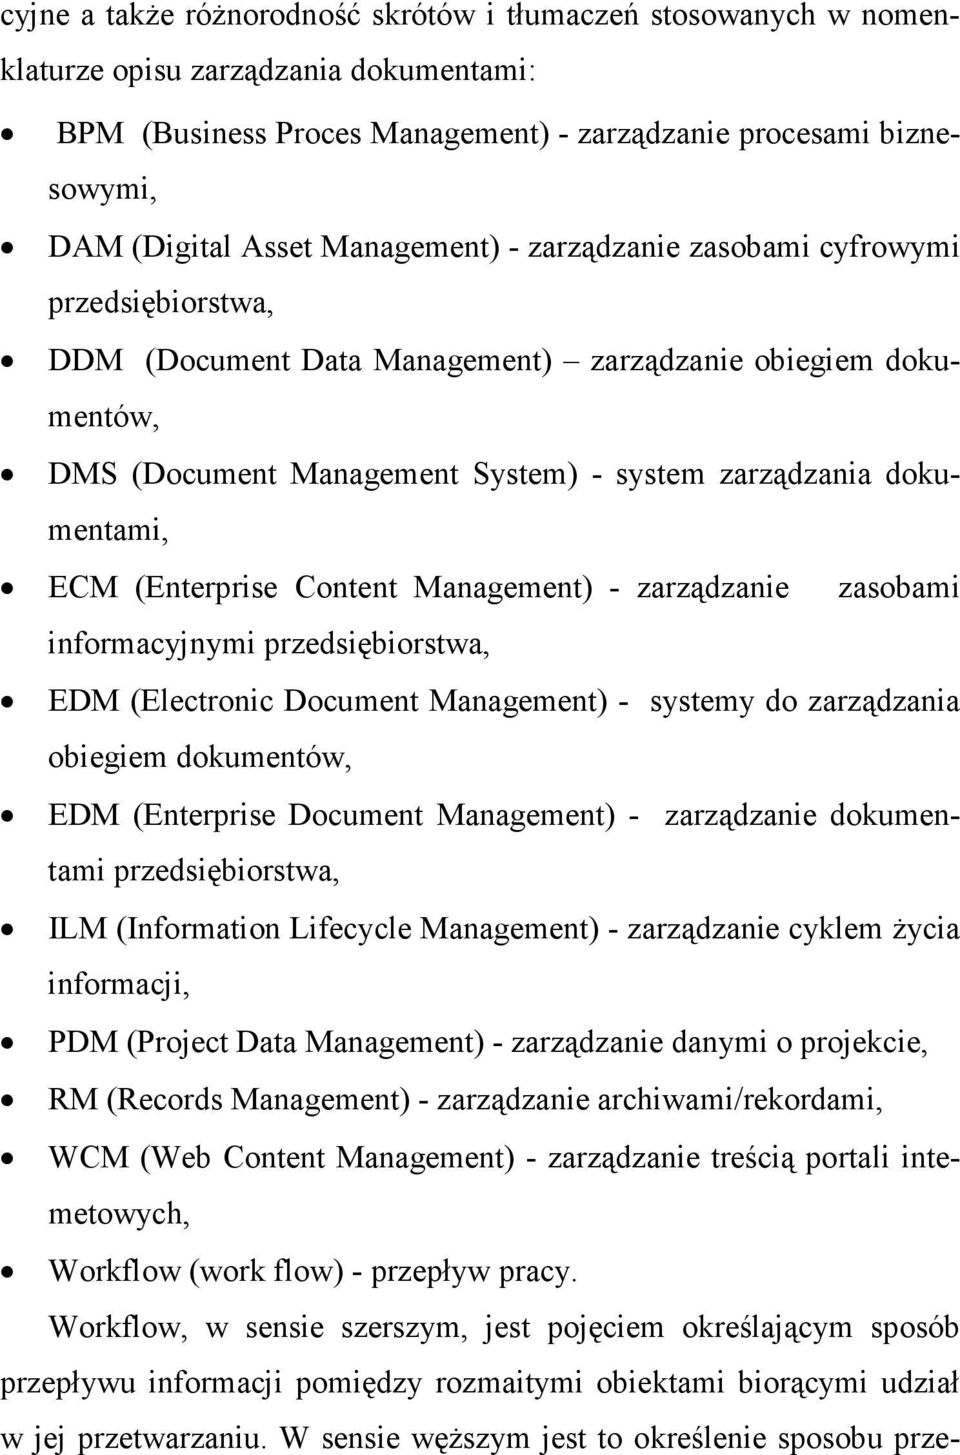 (Enterprise Content Management) - zarządzanie zasobami informacyjnymi przedsiębiorstwa, EDM (Electronic Document Management) - systemy do zarządzania obiegiem dokumentów, EDM (Enterprise Document